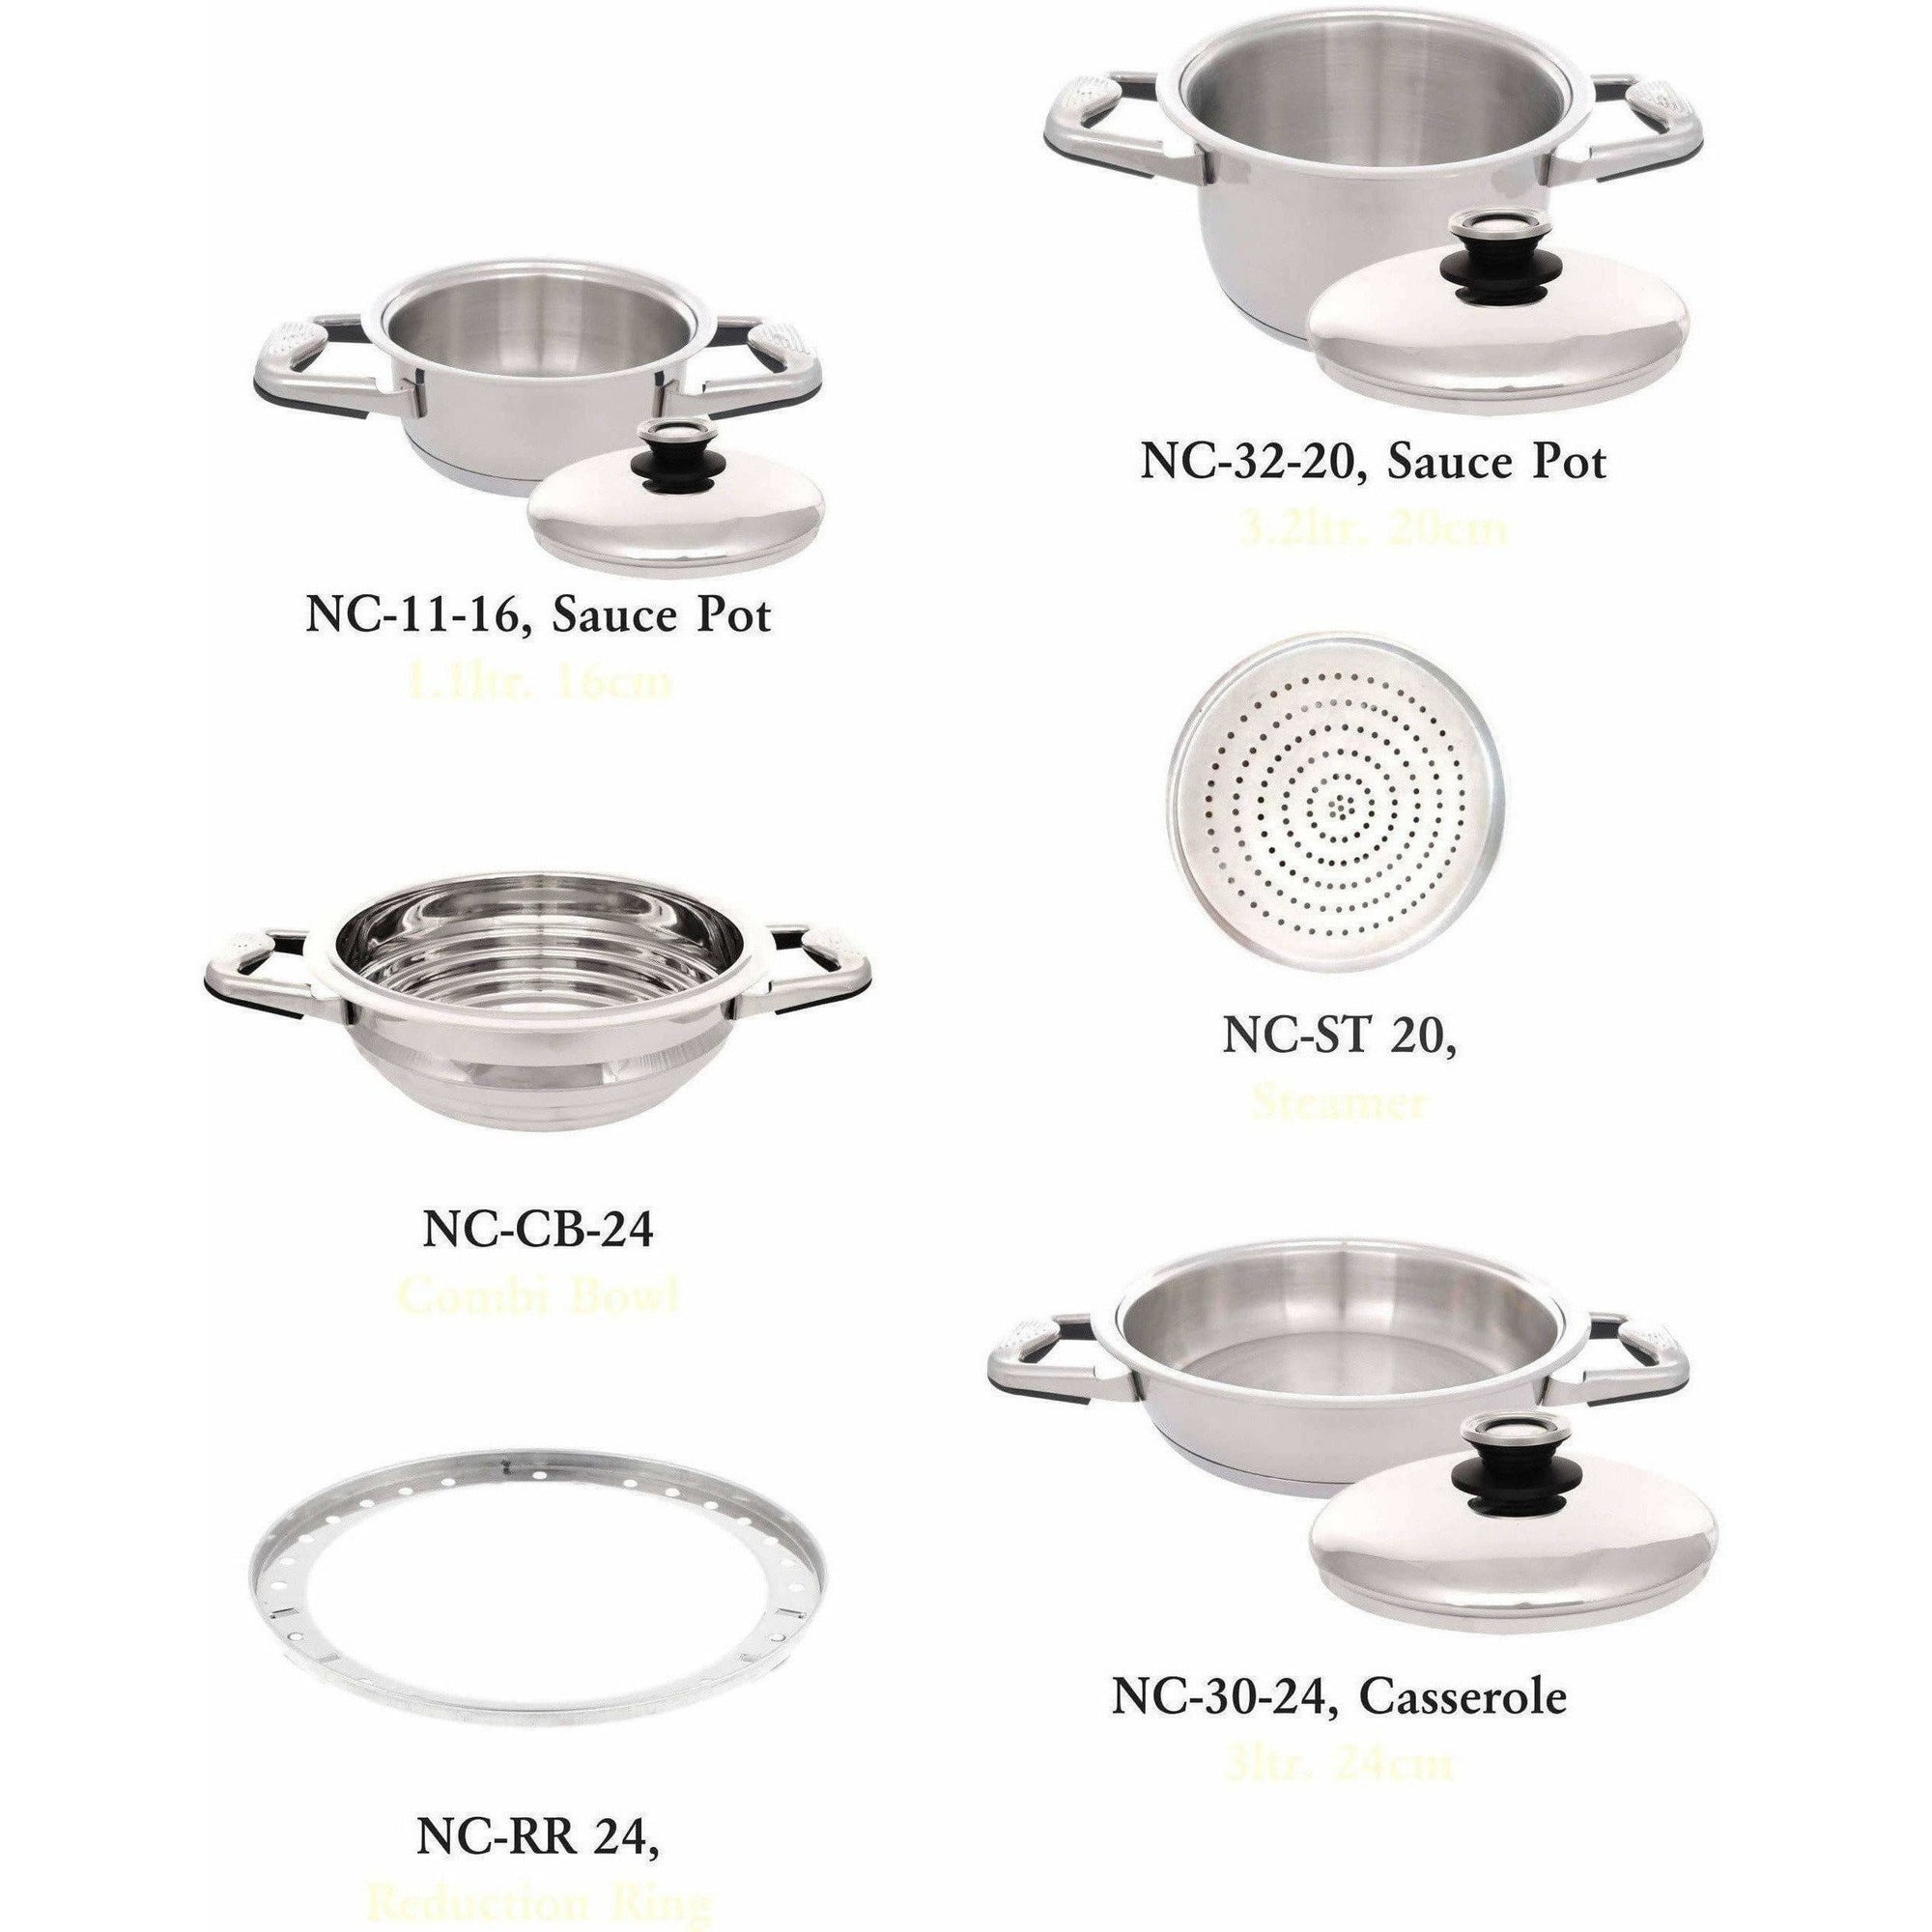 Nutricook High grade Stainless Steel 316L Sauce Pot (3.2 Ltr & 1.1 Ltr) with Casserole (3 Ltr) & Combi Bowl